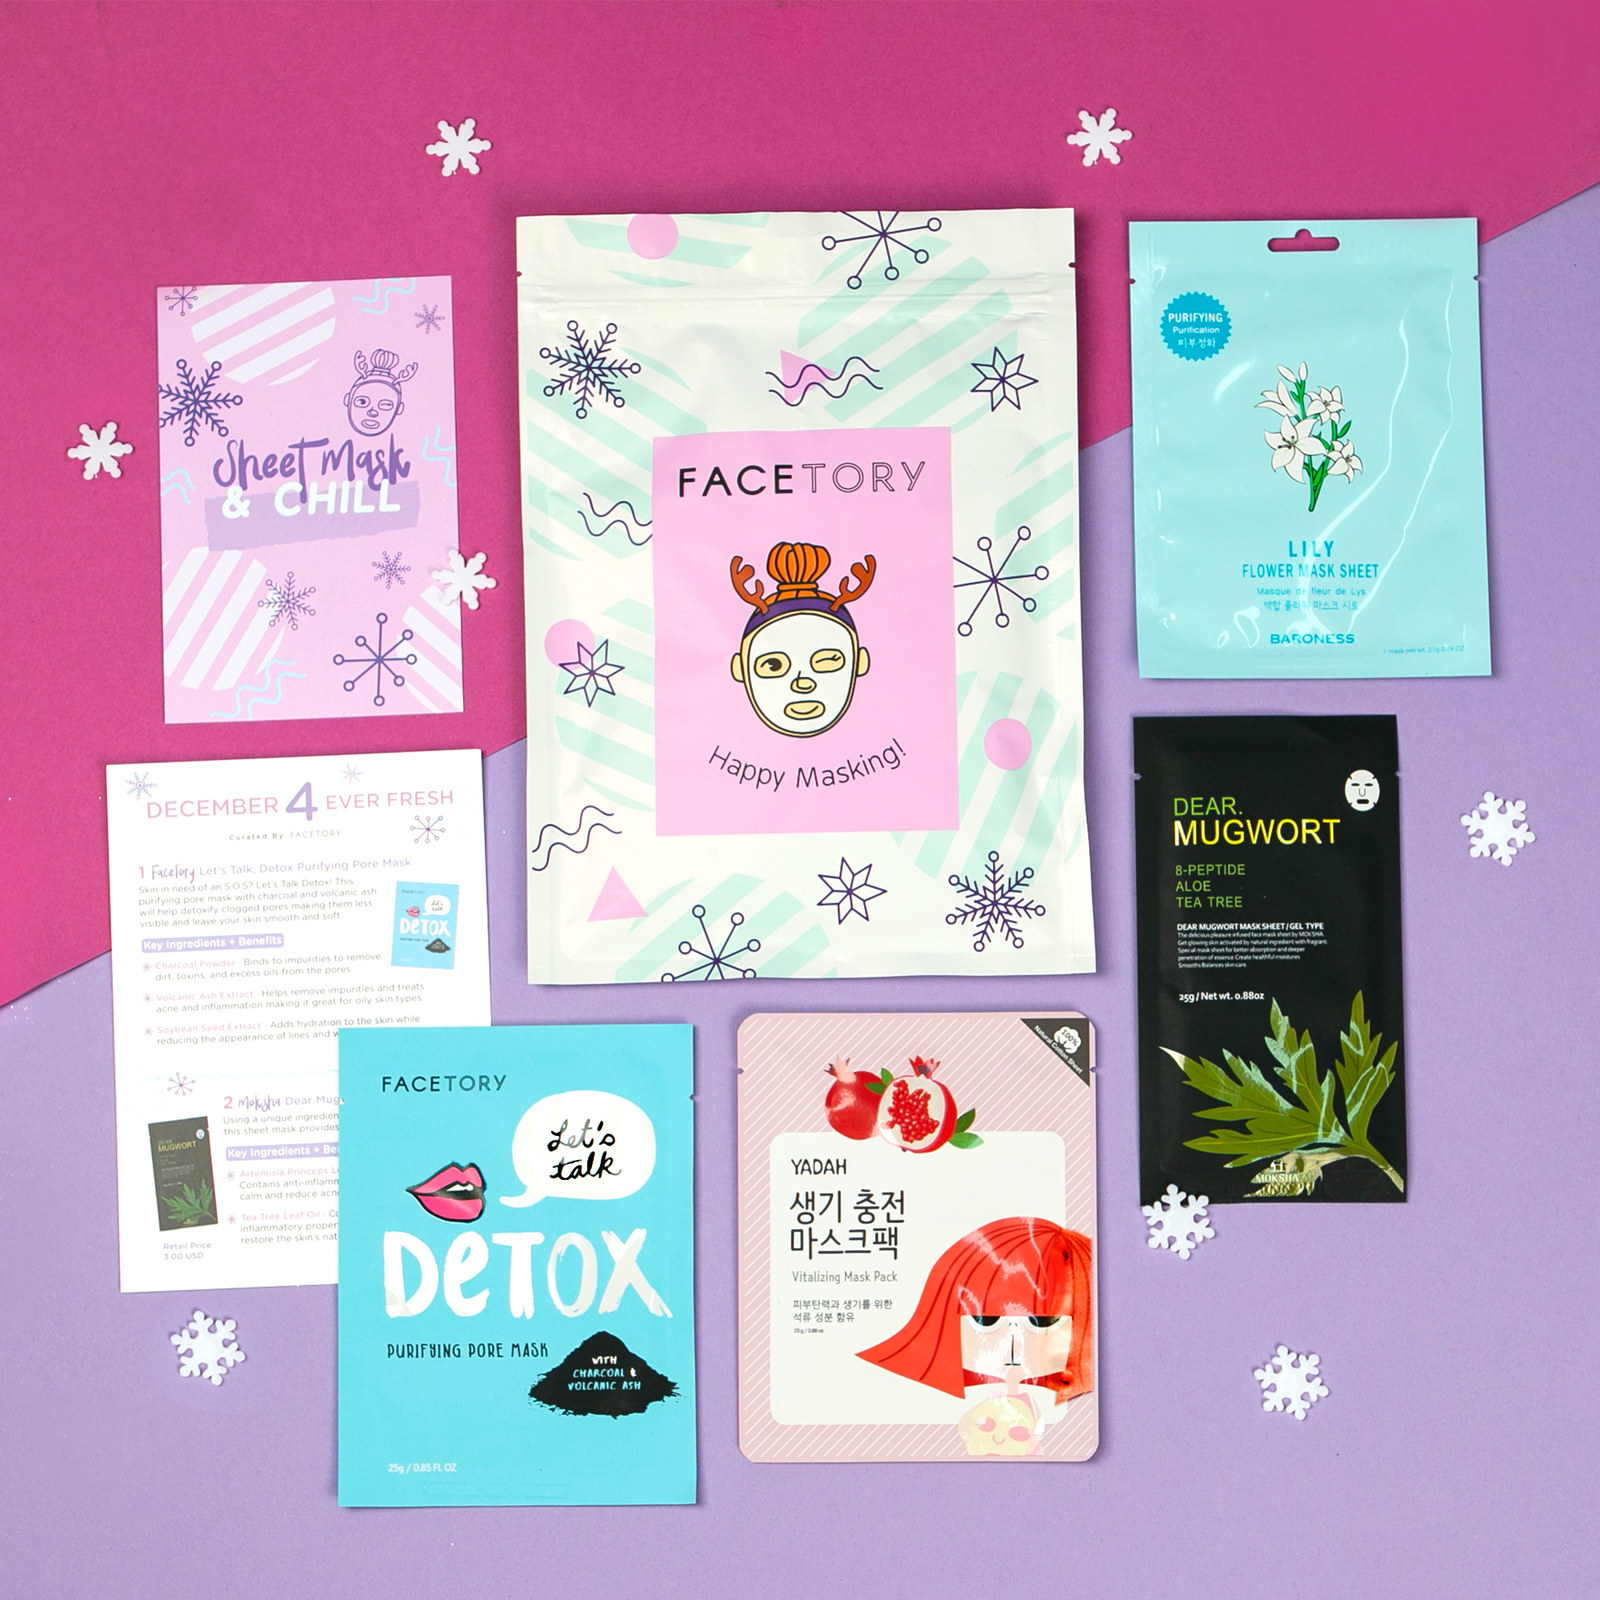 Flatlay with Facetory packaging, instructions sheet, and four face masks.